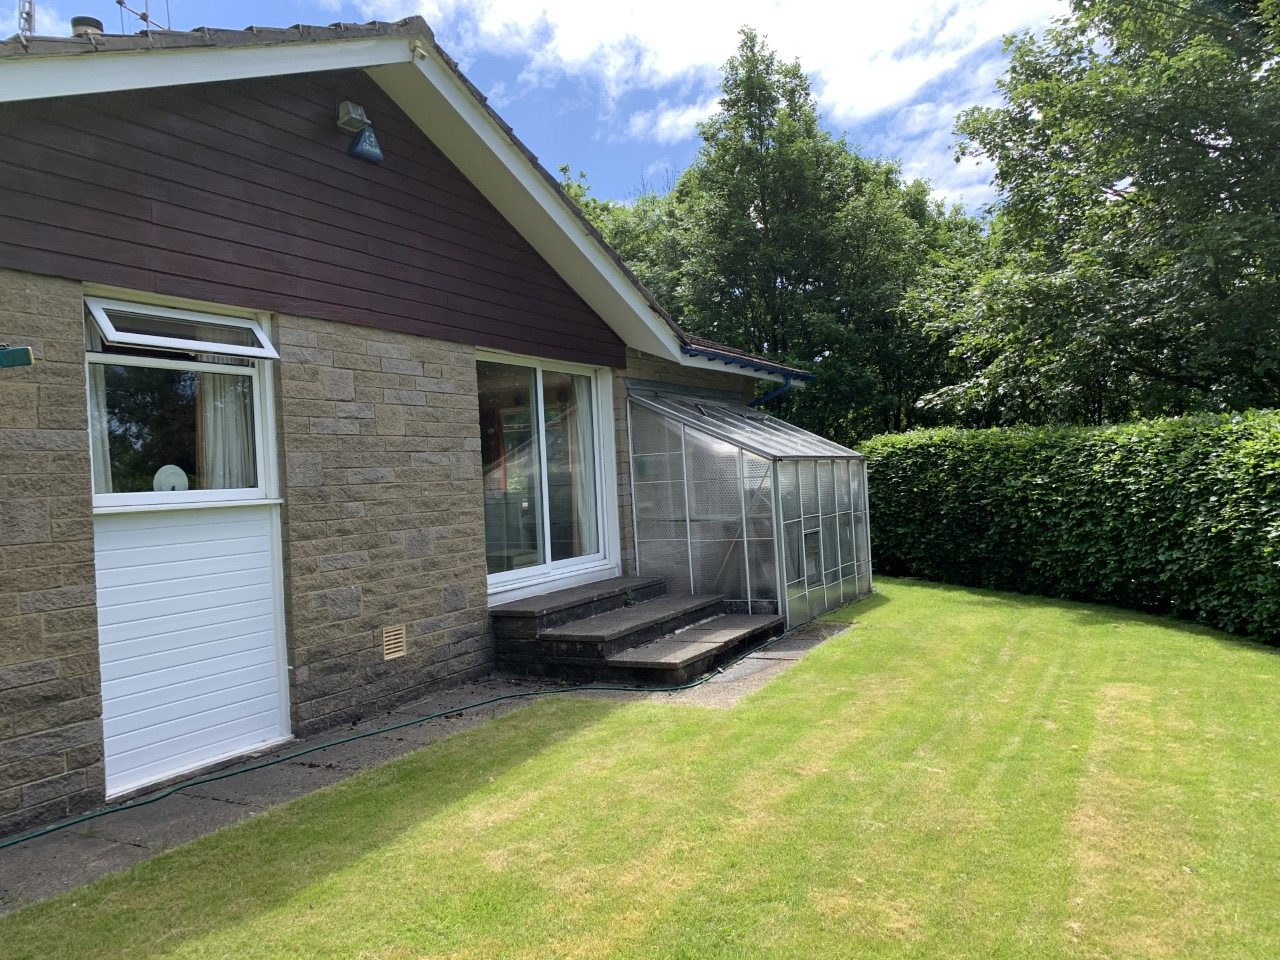 4 bedroom detached bungalow For Sale in Todmorden - Photograph 25.